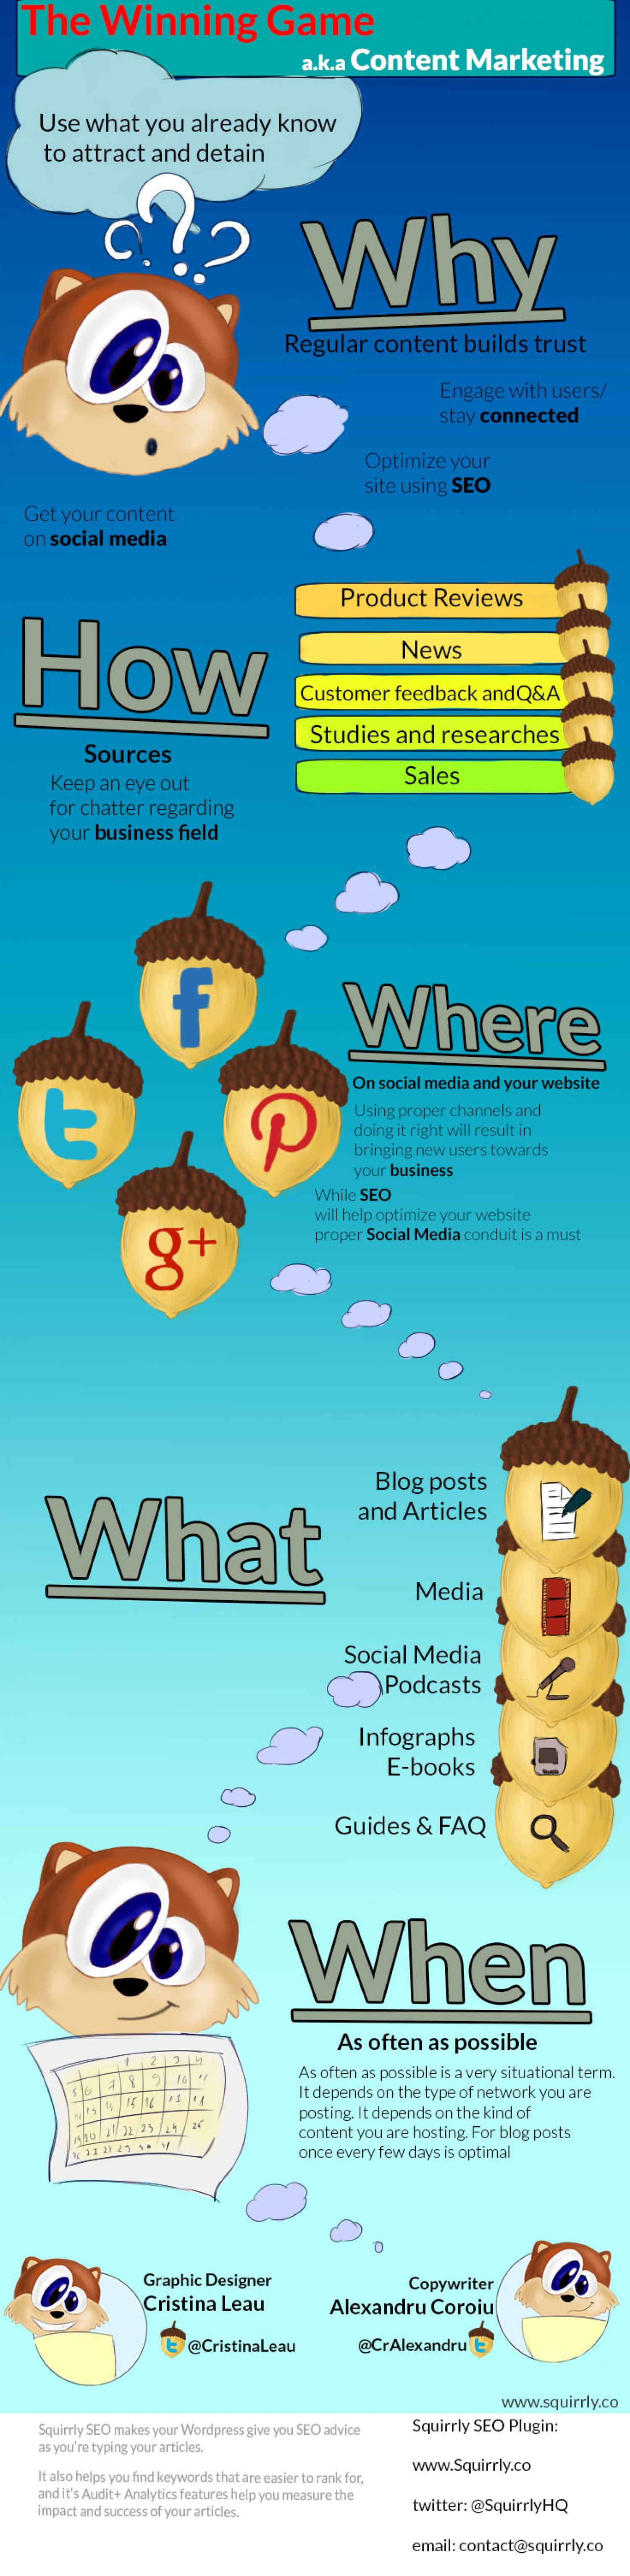 The Winning Game a.k.a Content Marketing Infographic